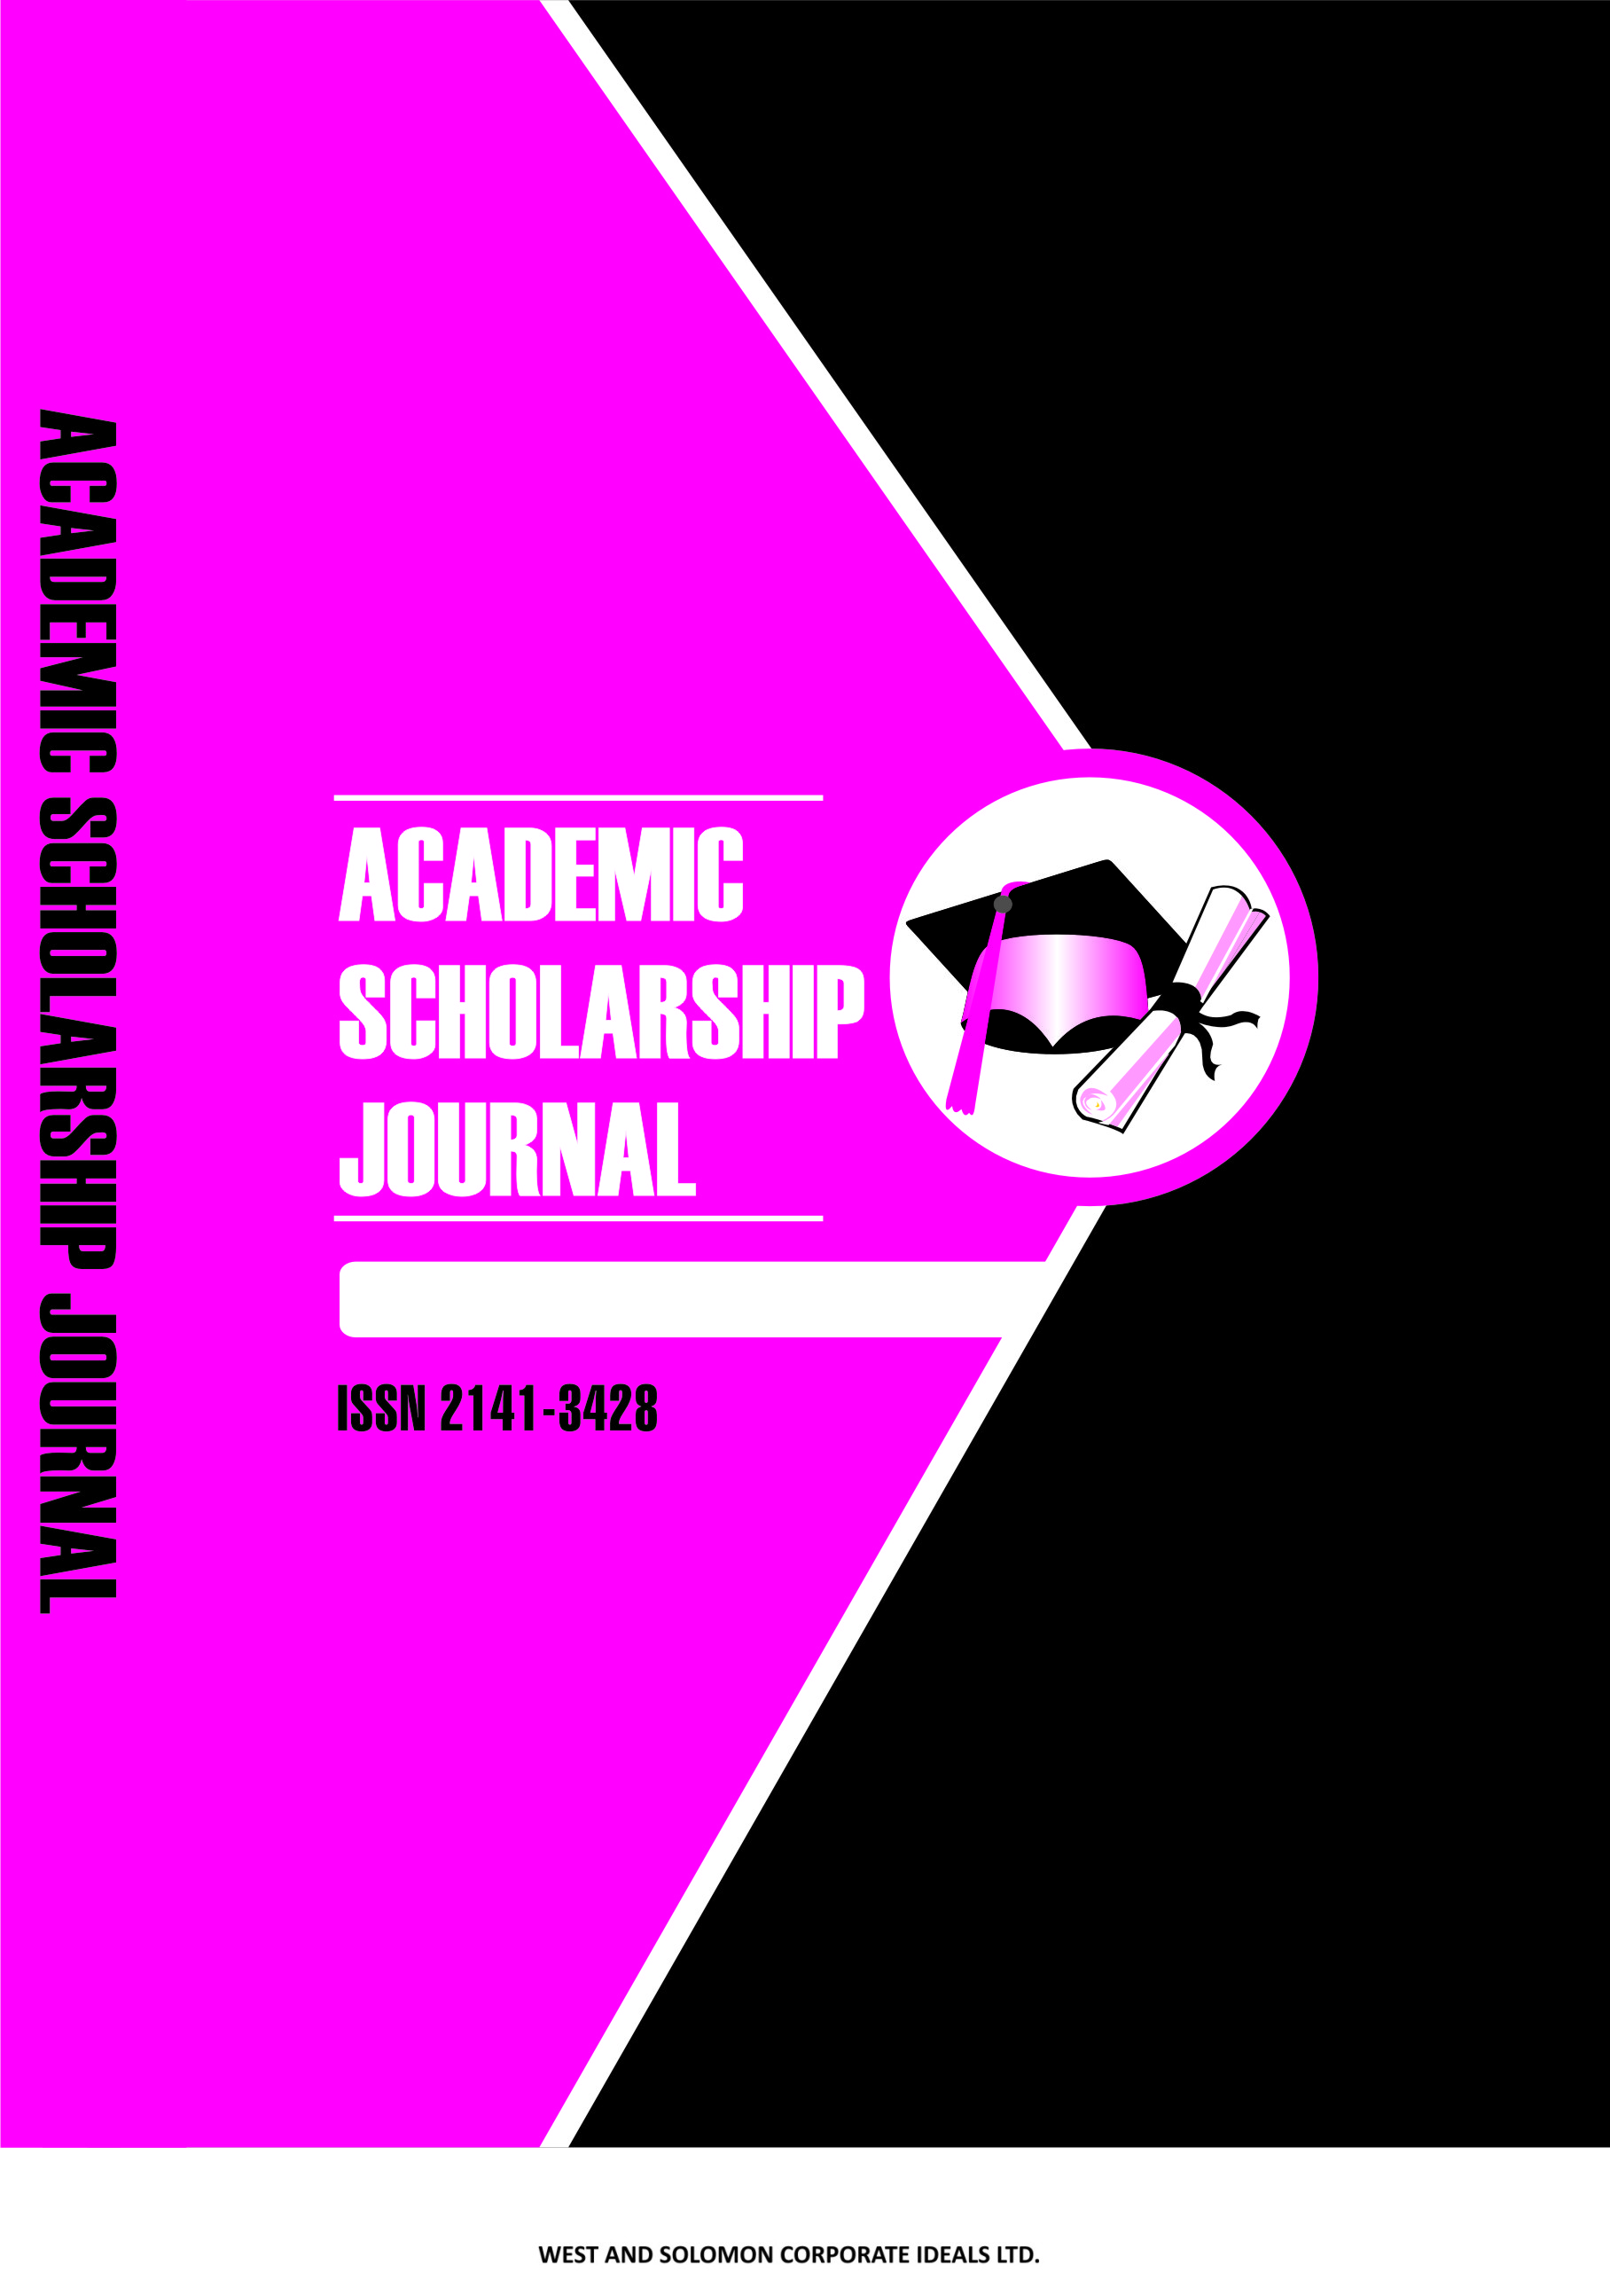 Approaches in International Journal of Research Developmen